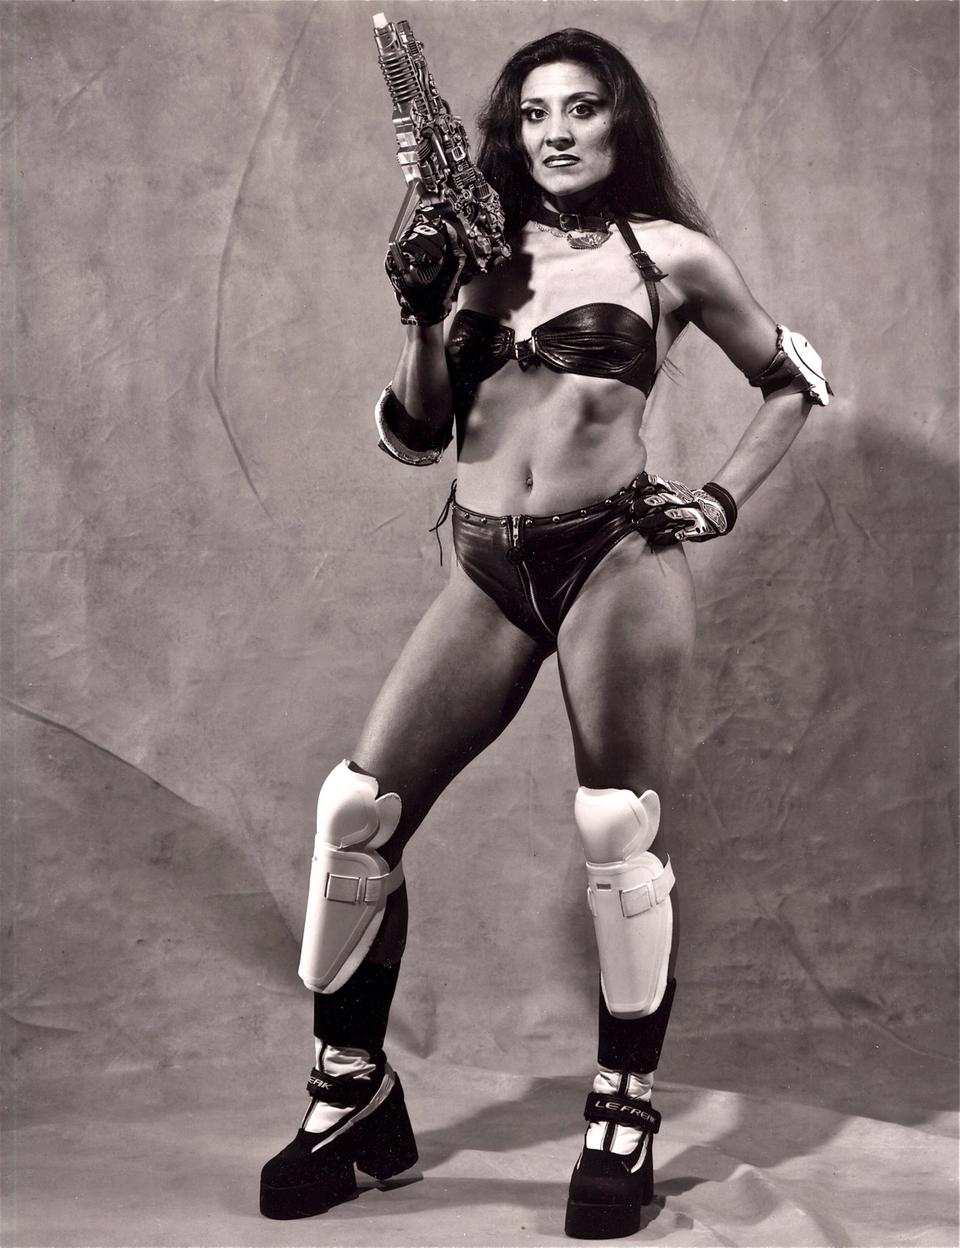 Latina woman in a bikini with a toy gun, knee and shoulder pads, high platform shoes.